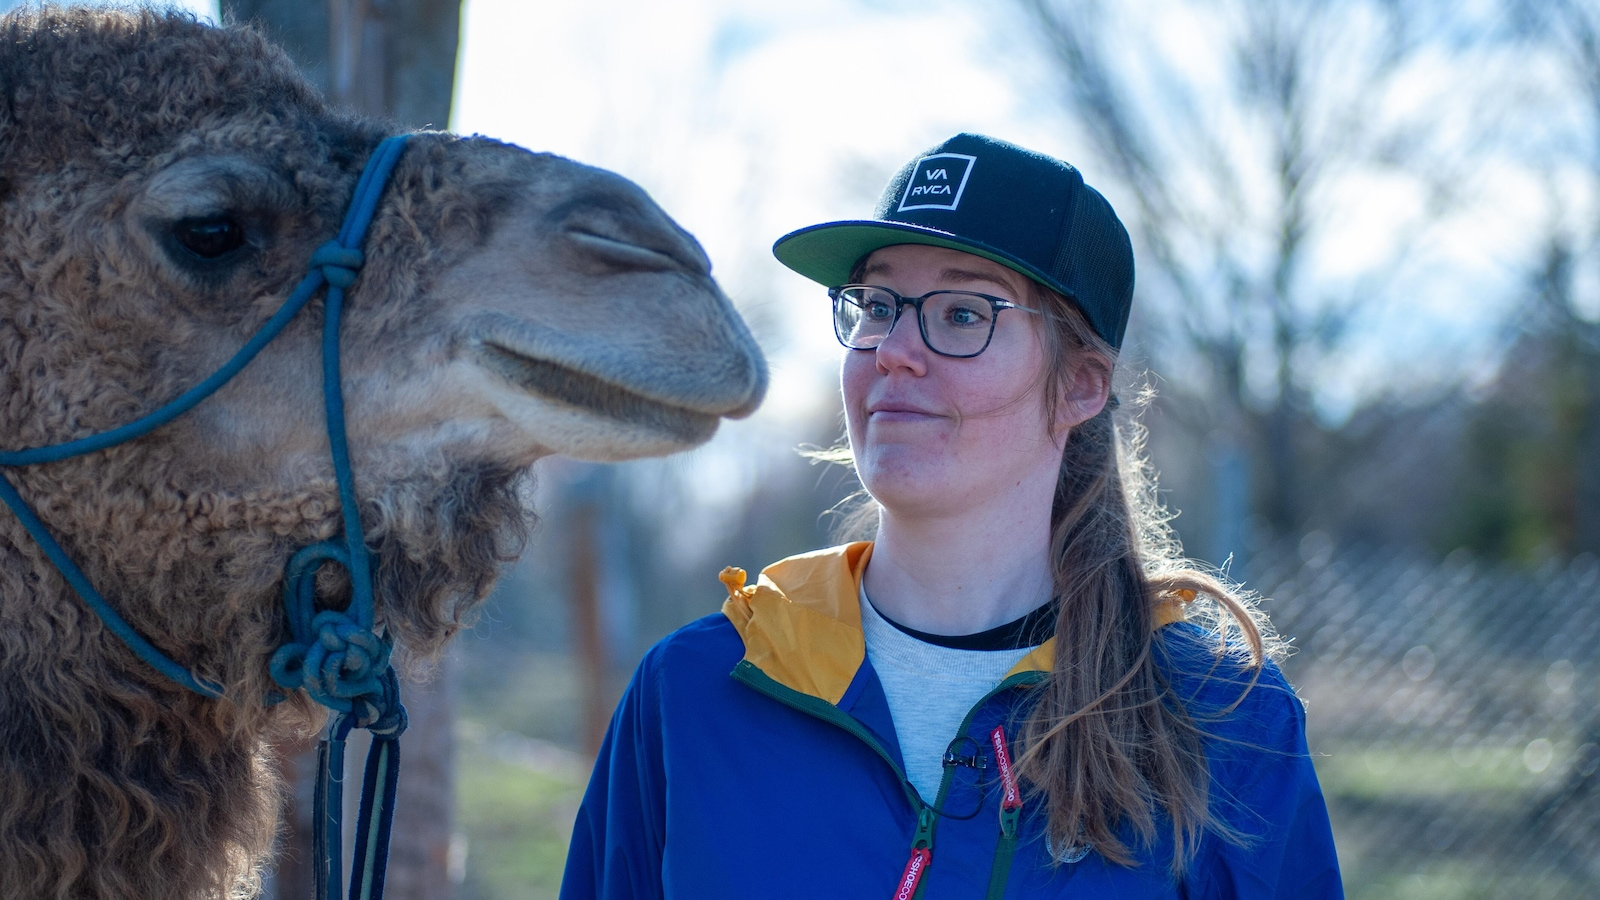 Llama-zing Adventures Company in Haute-Abujagane.  The owner, Jose Gutro, wears a purple coat.  Guide Monica Cormier wears a camouflage coat.  The person who wears the hat is called Annabelle Heber.  The company has a llama, emo and a camel.